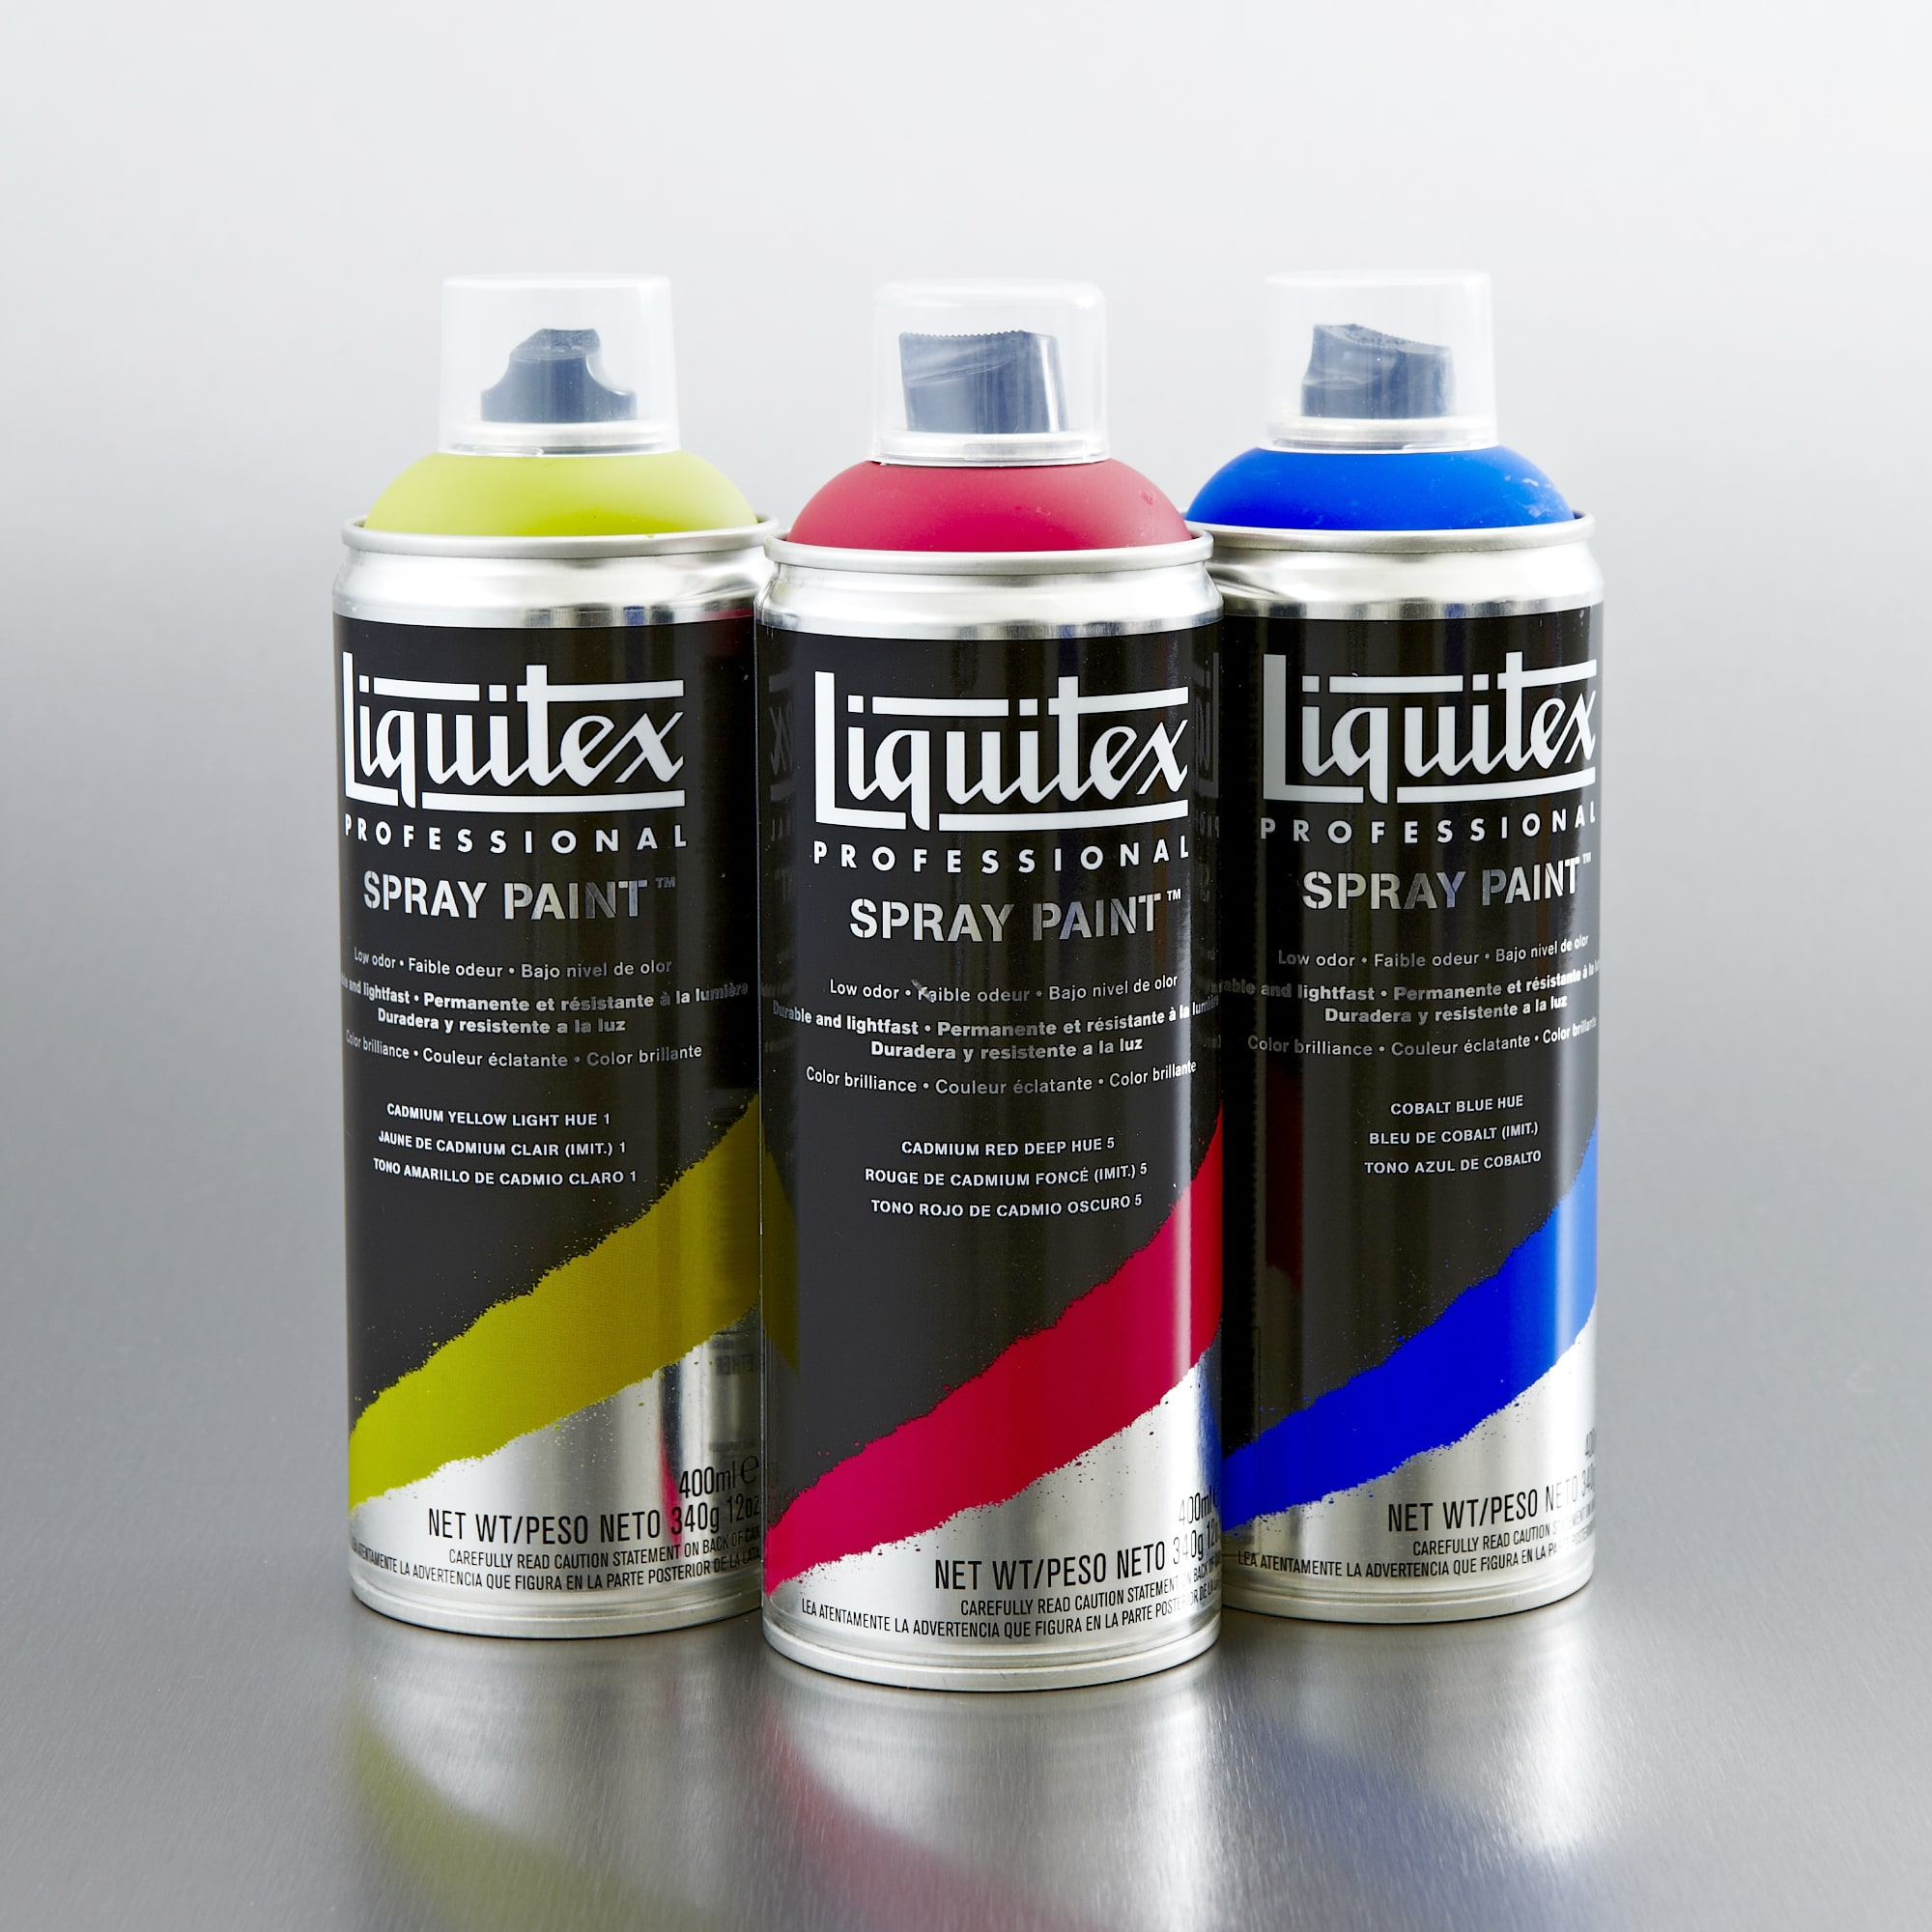 Liquitex Spray Paint 400ml Artist Acrylic Spray Paint Cans Acrylic Paint Art Supplies